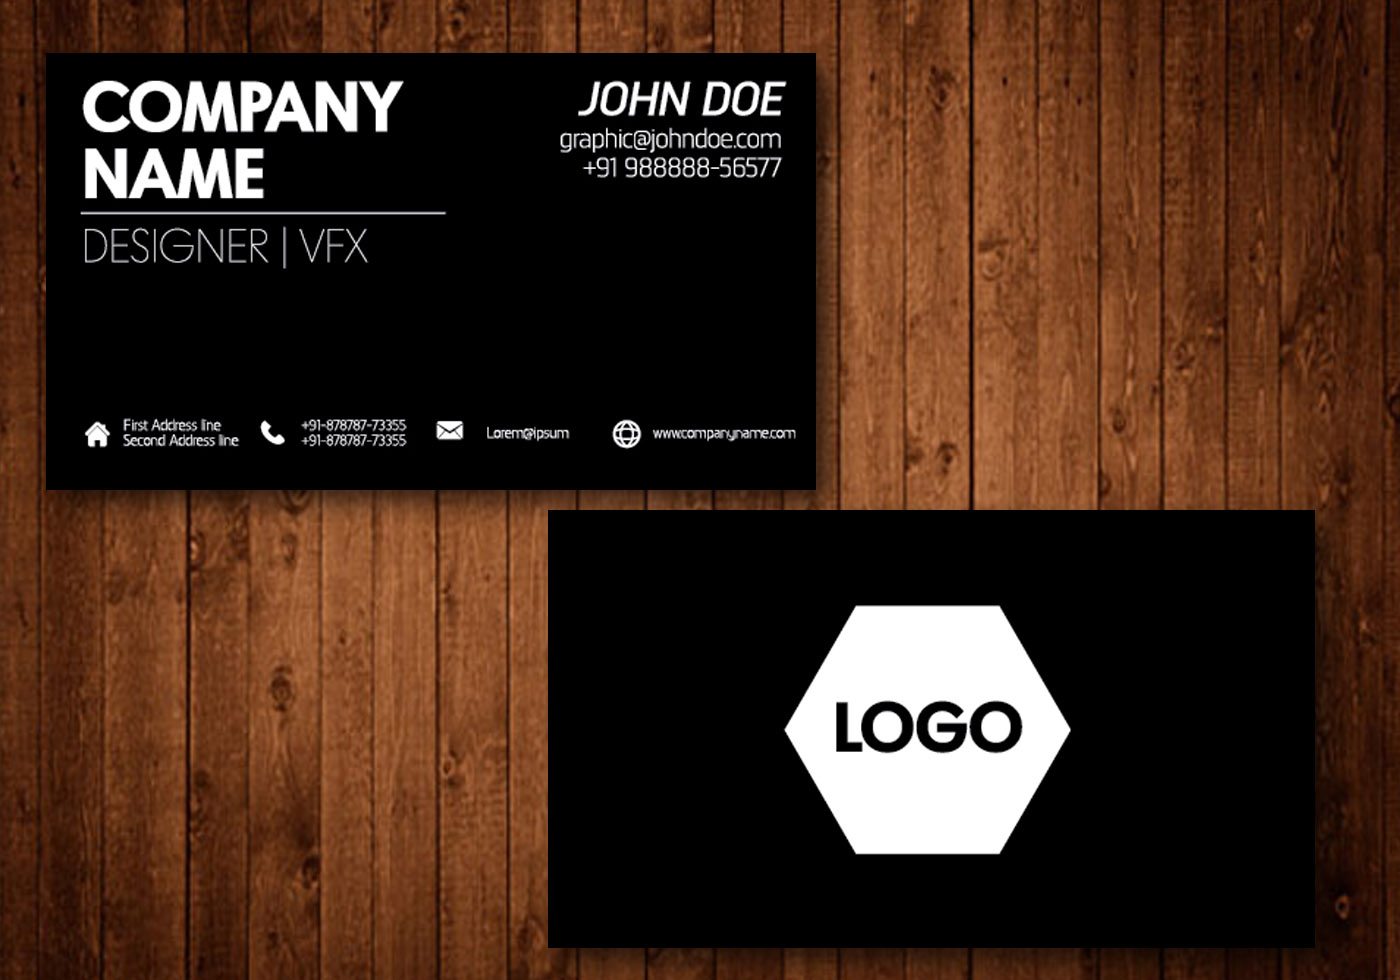 Black business card vector template download free vector art black business card vector template download free vector art stock graphics images cheaphphosting Choice Image